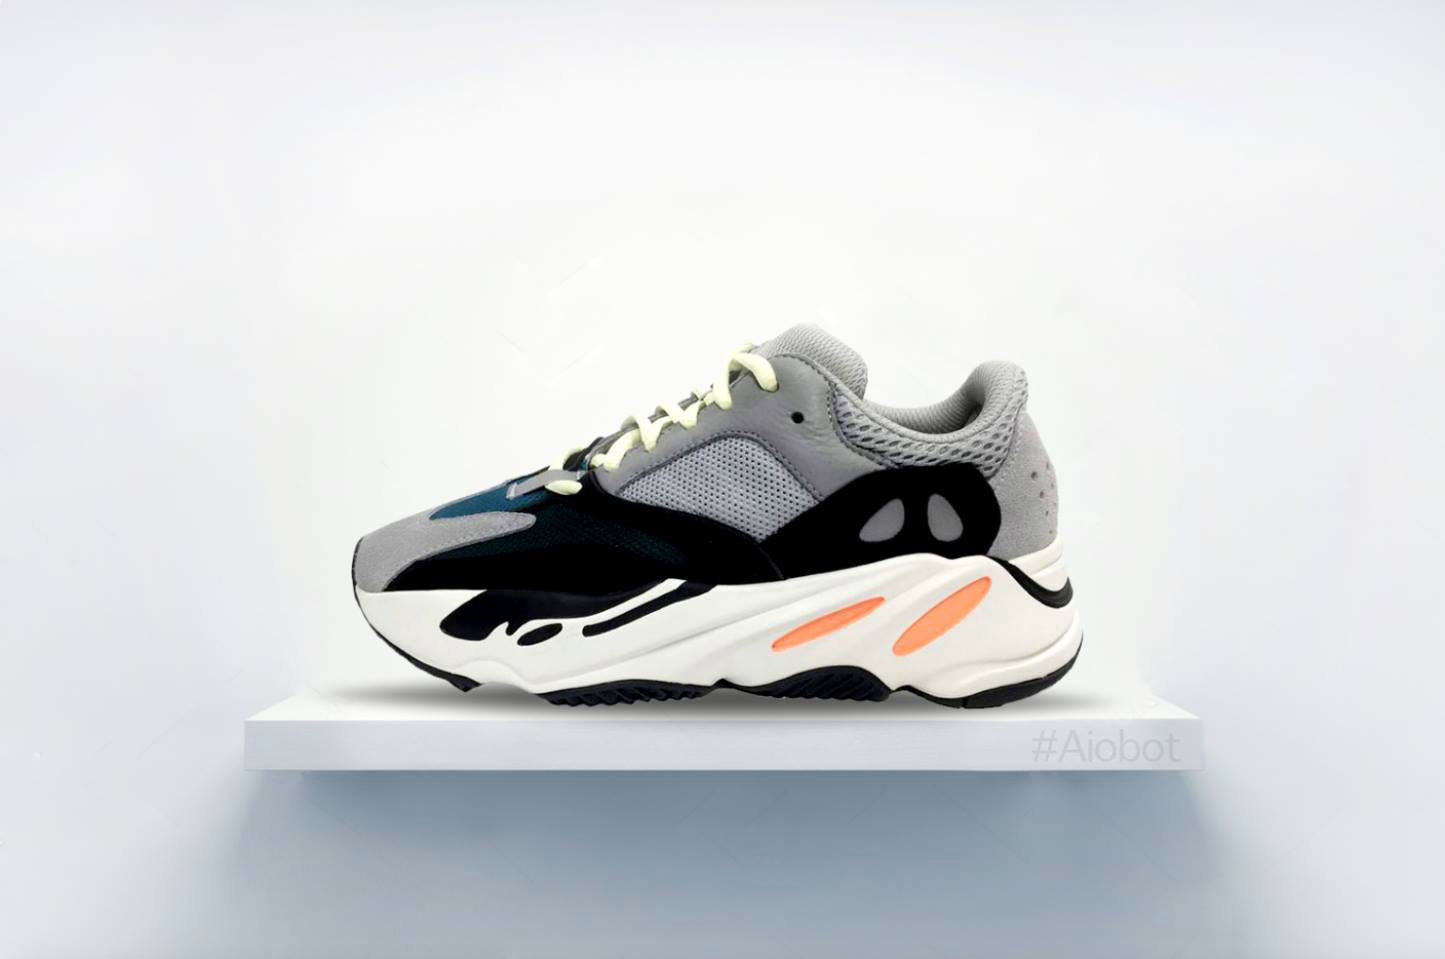 Yeezy Boost Waverunner 700